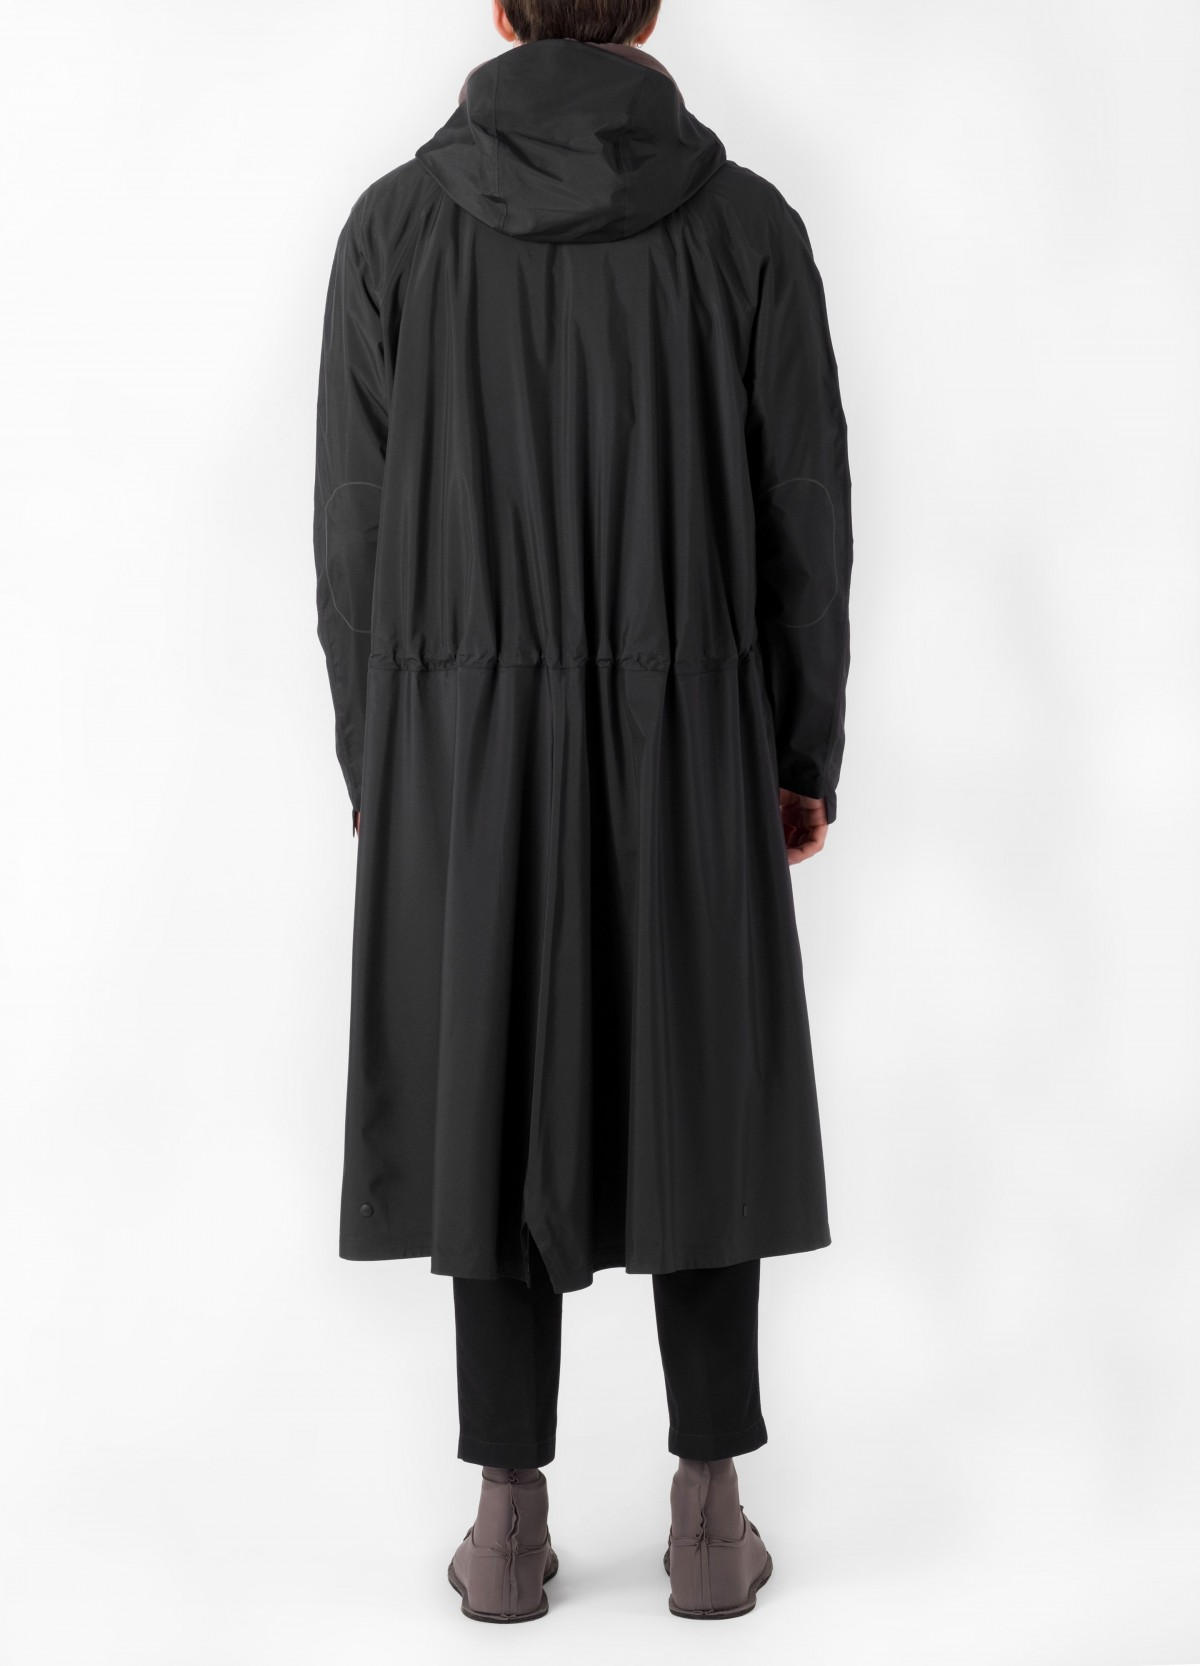 senscommon All-Commute Overcoat  in Black